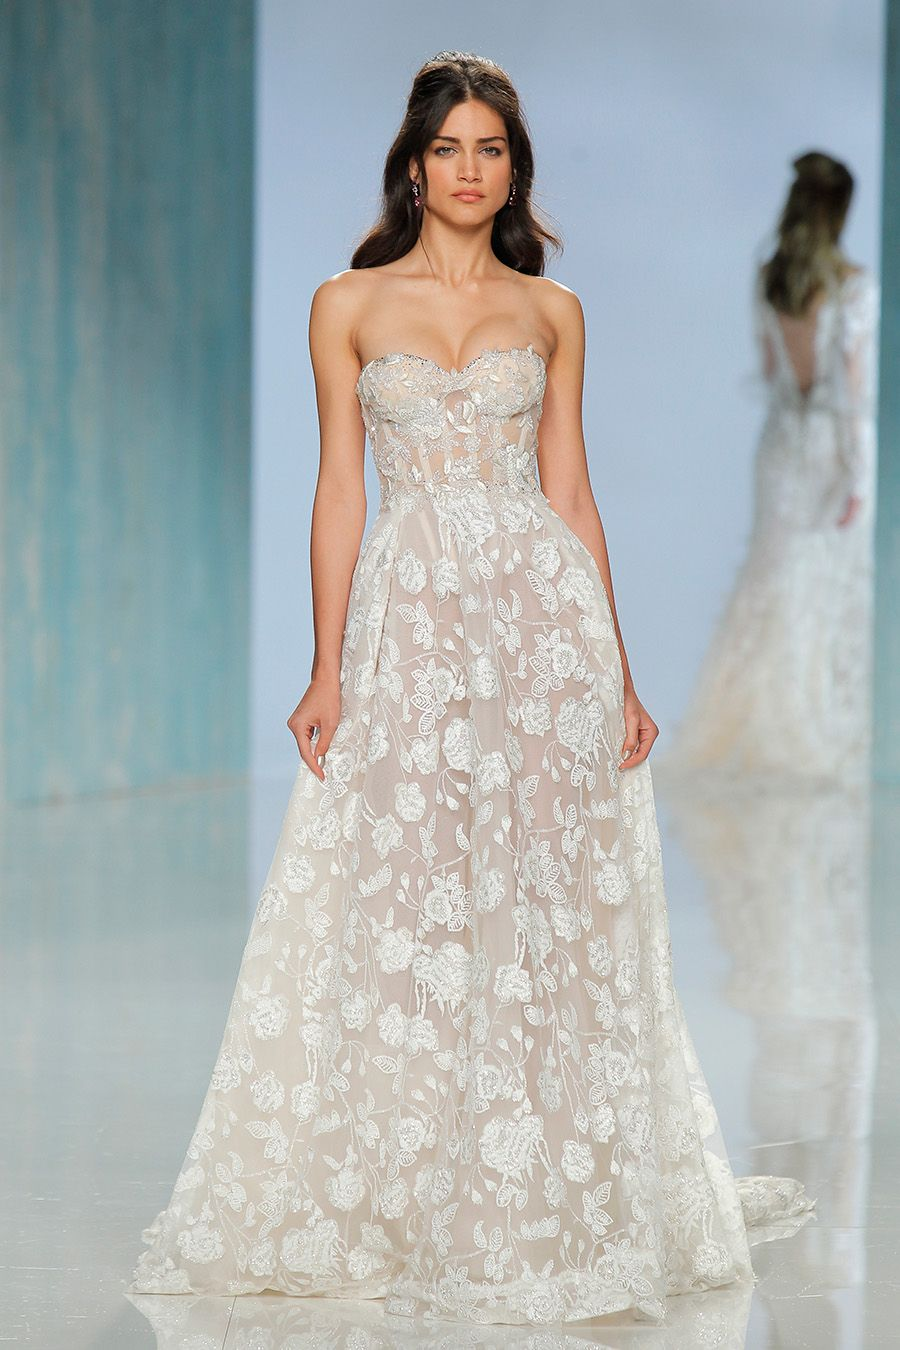 Barcelona bridal fashion week galia lahav sheer drapes